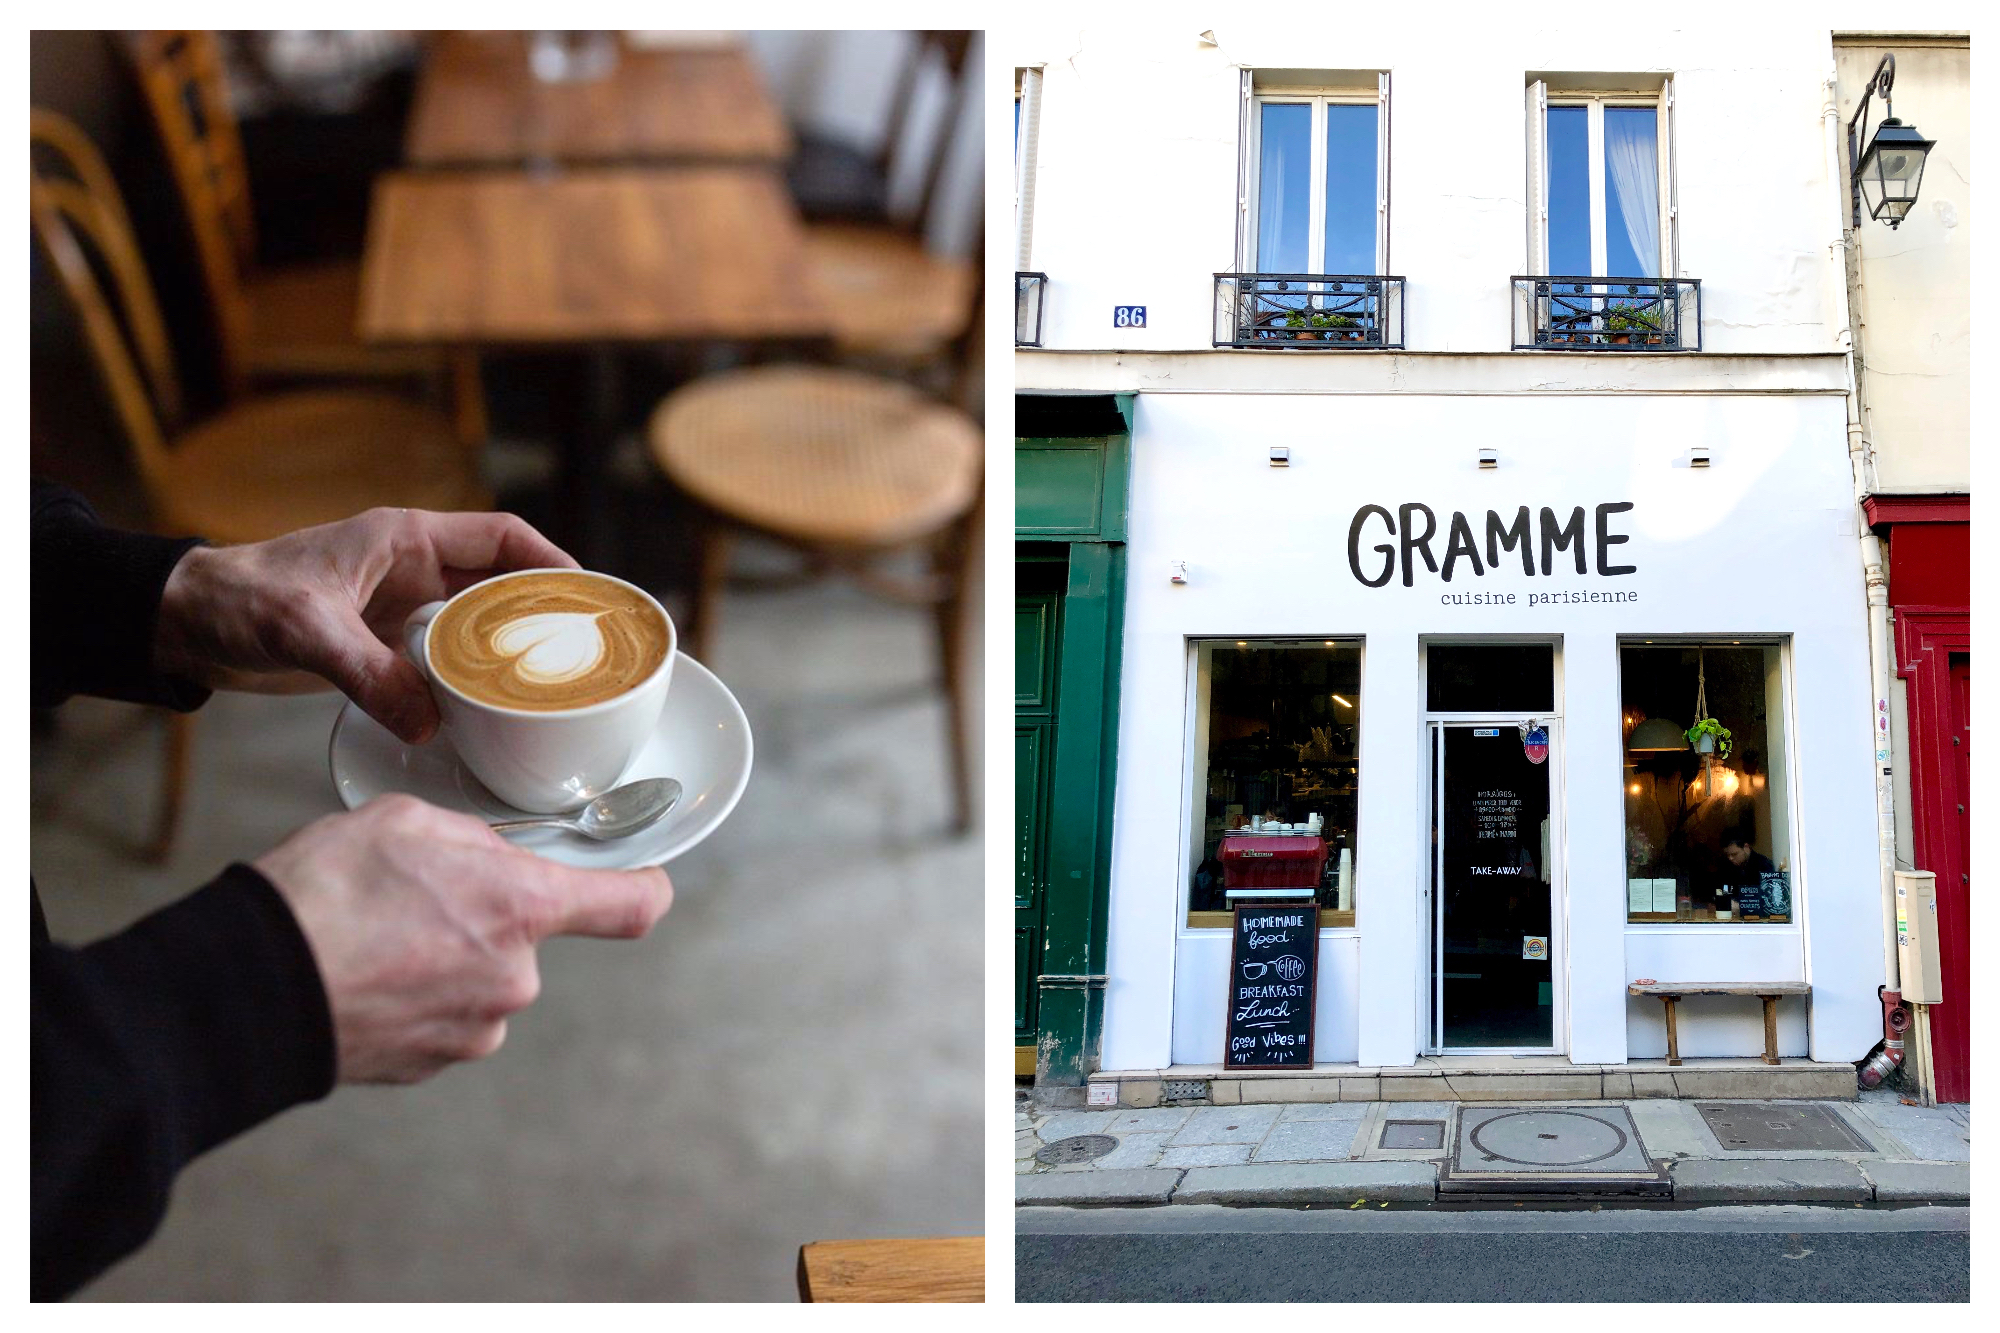 A bartender carrying a frothy cappuccino with a heart with wooden tables and chairs in the background (left) and the white exterior of Gramme coffee shop in Paris (right).